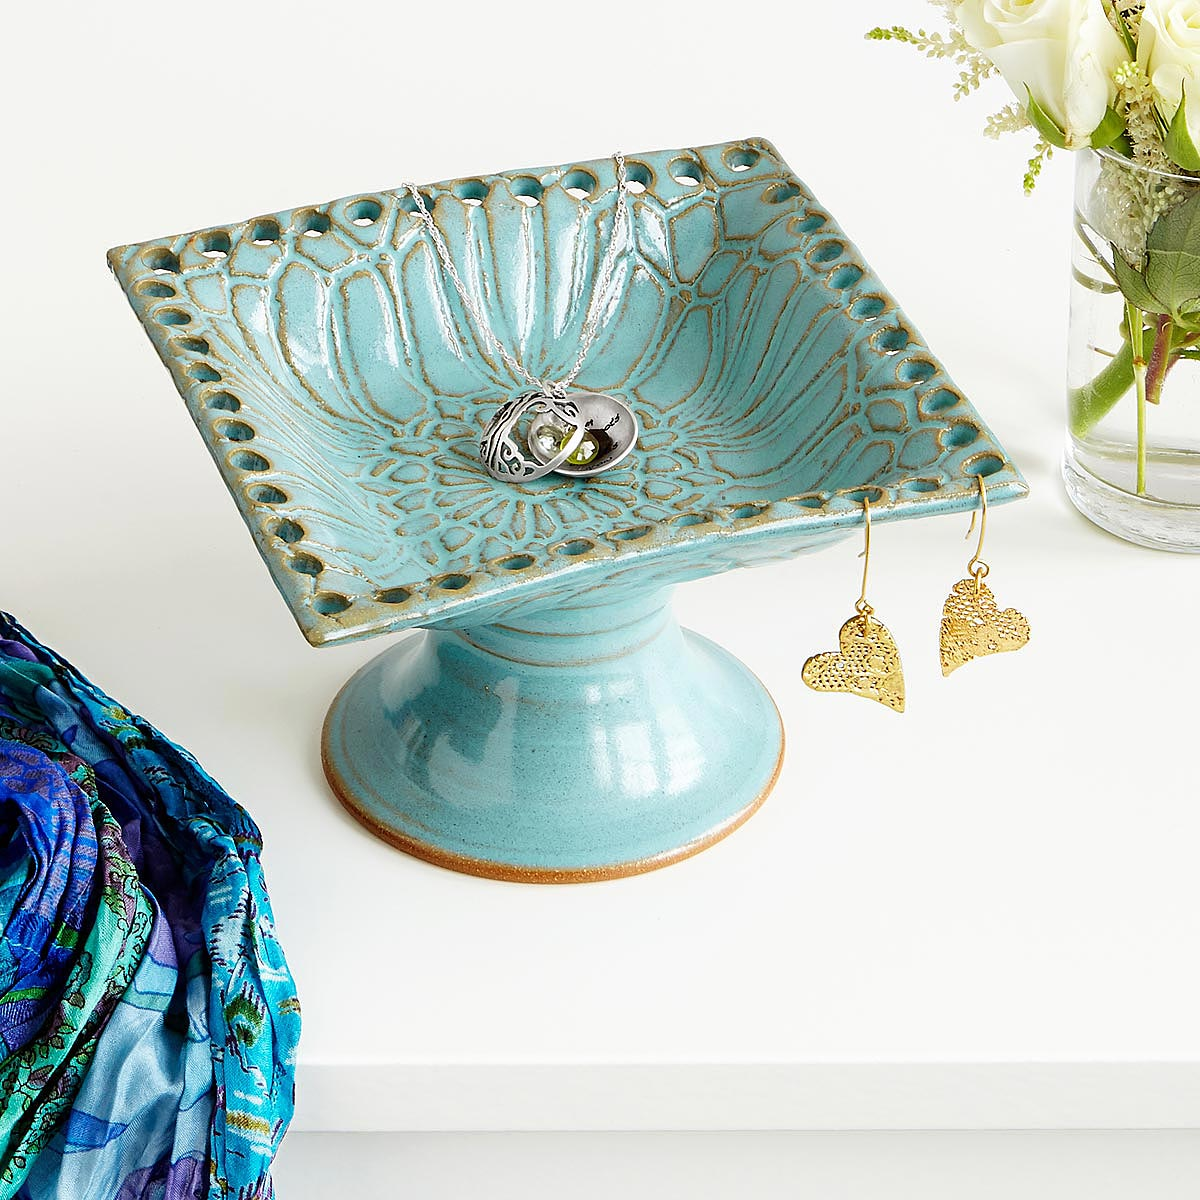 Pedestal Jewelry Holder | UncommonGoods